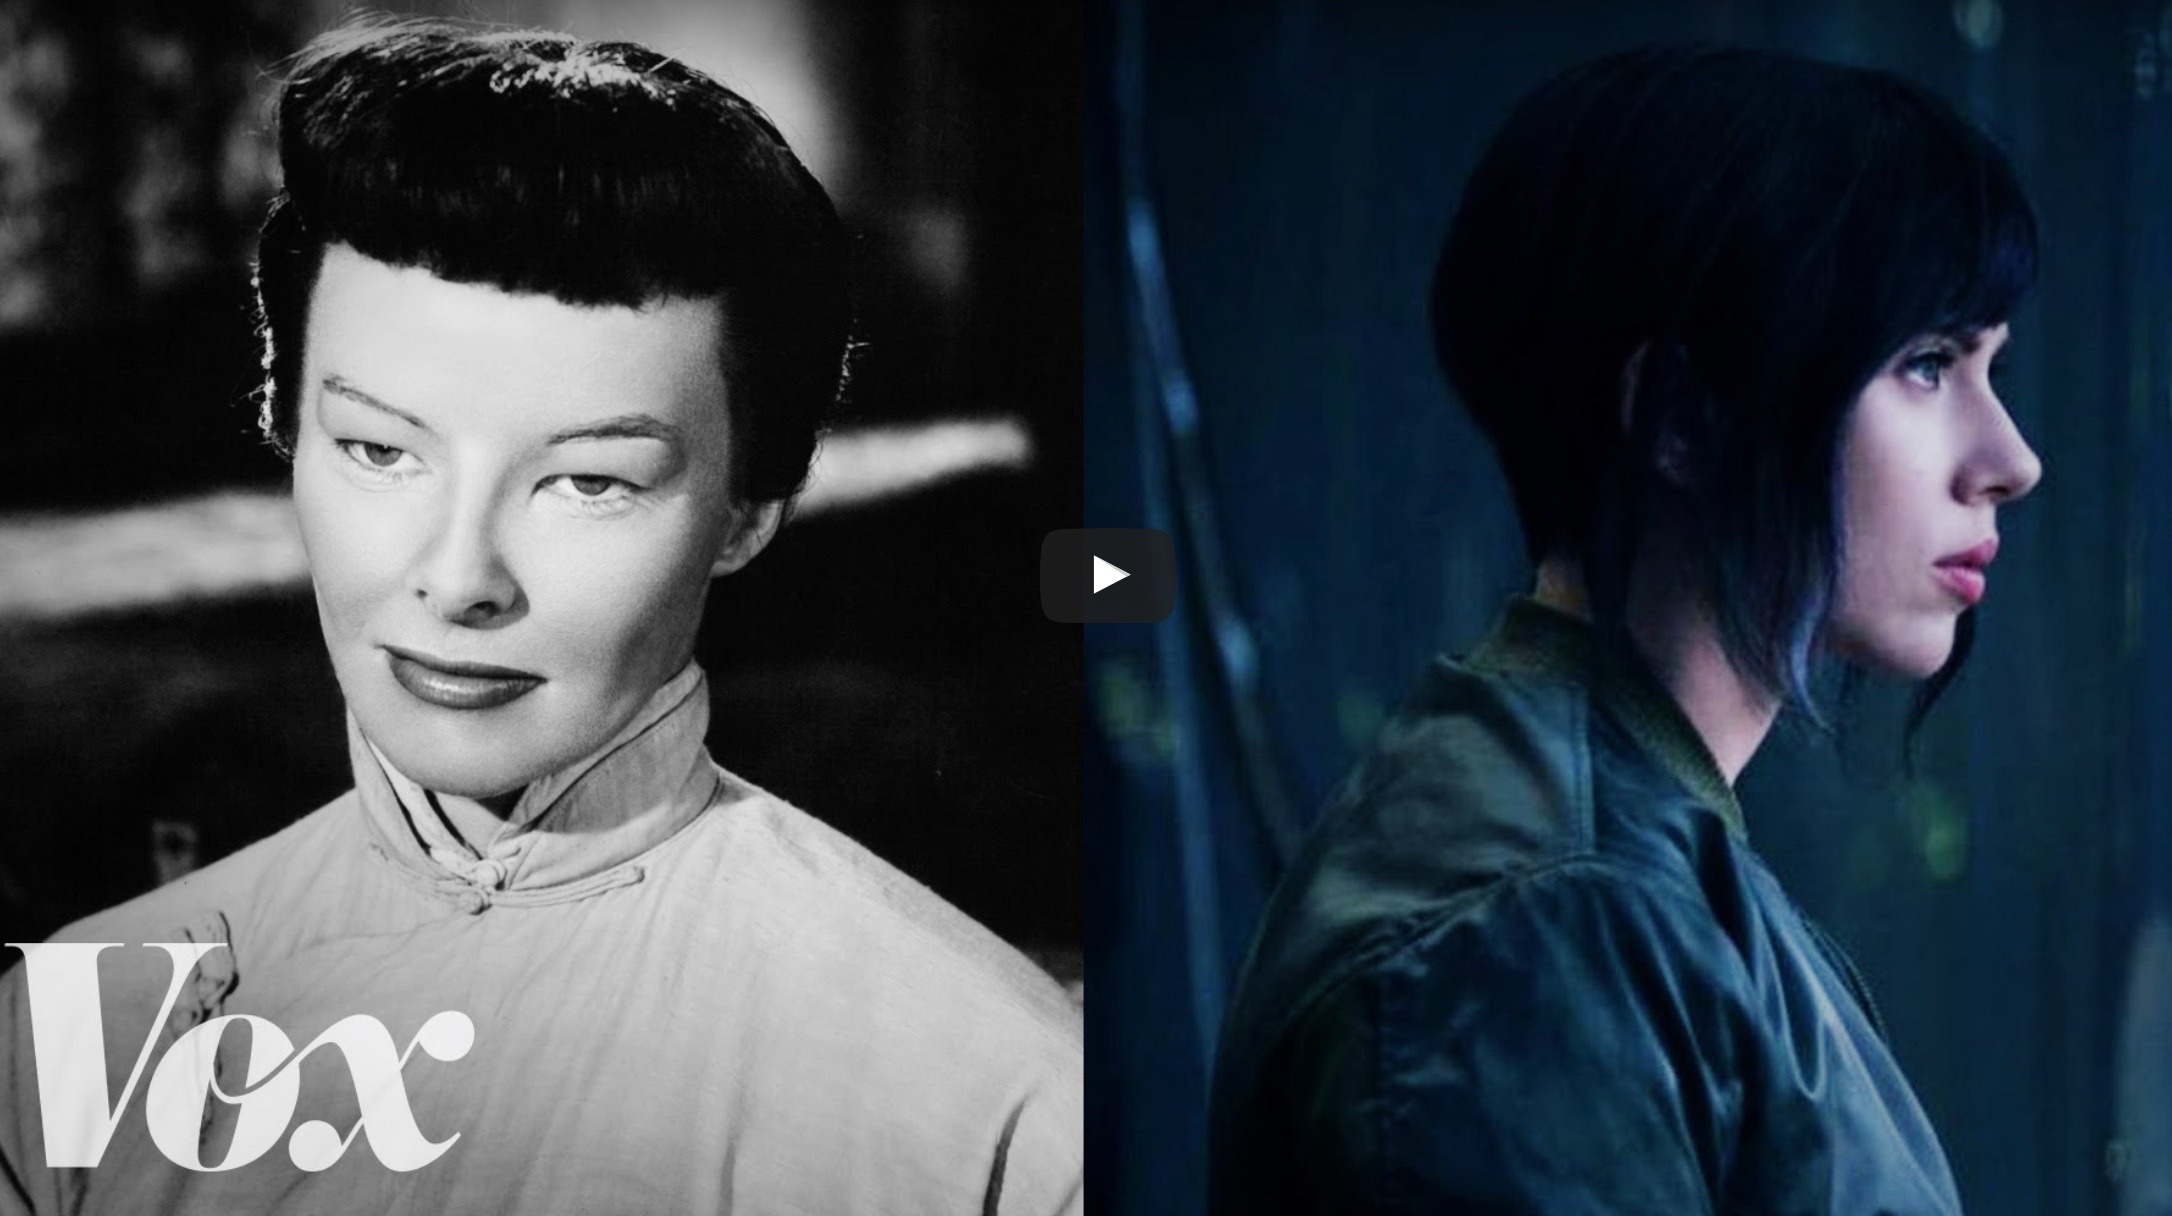 Hollywood's Whitewashing of Asian Characters